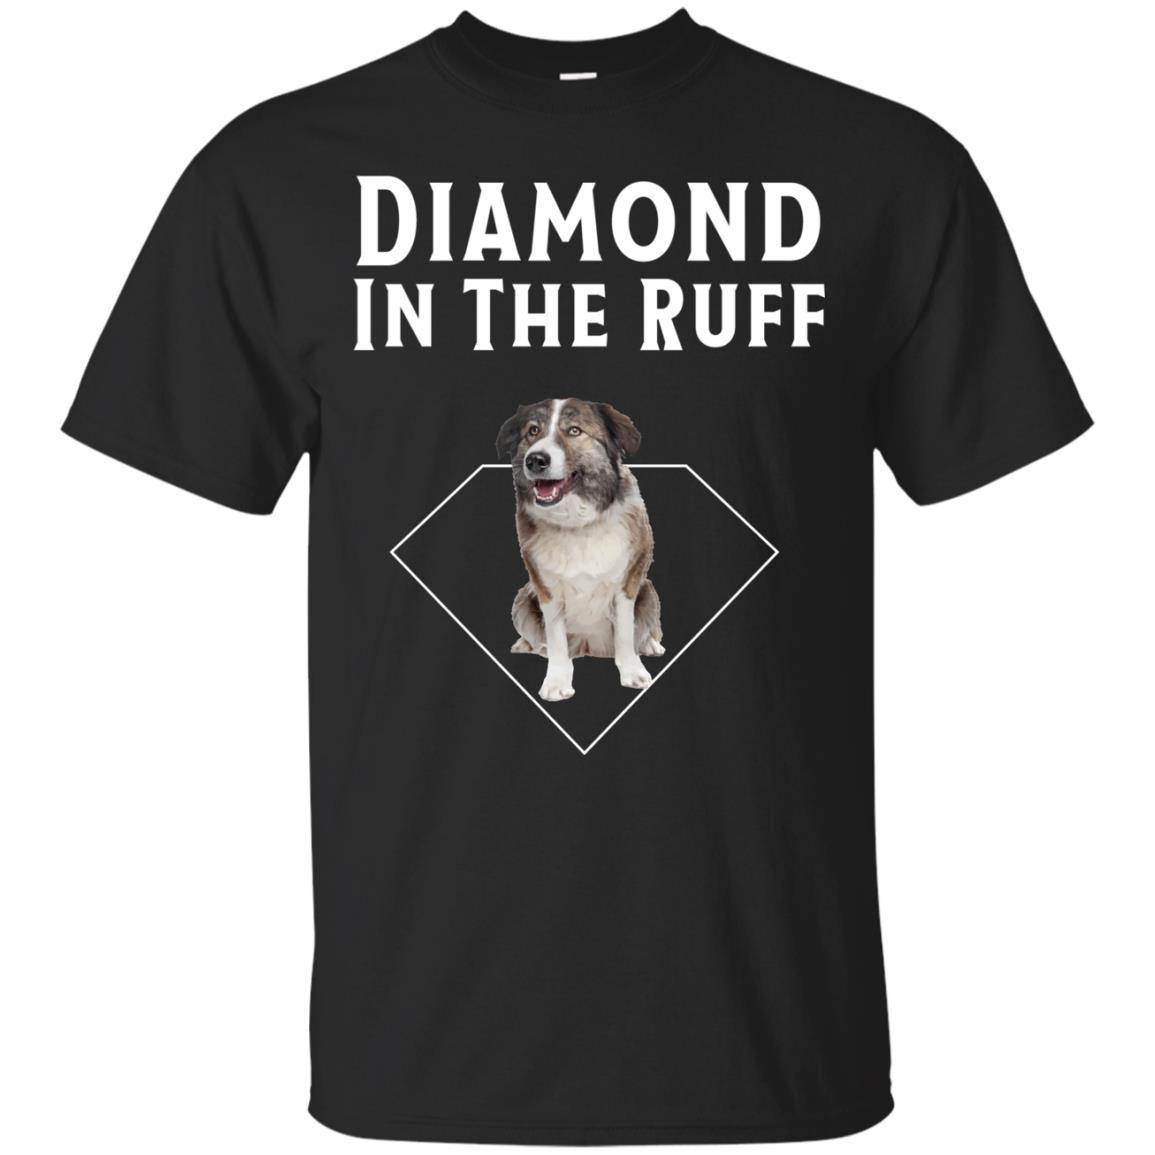 Aidi Diamond in The Ruff Dog Lover T-Shirt Men